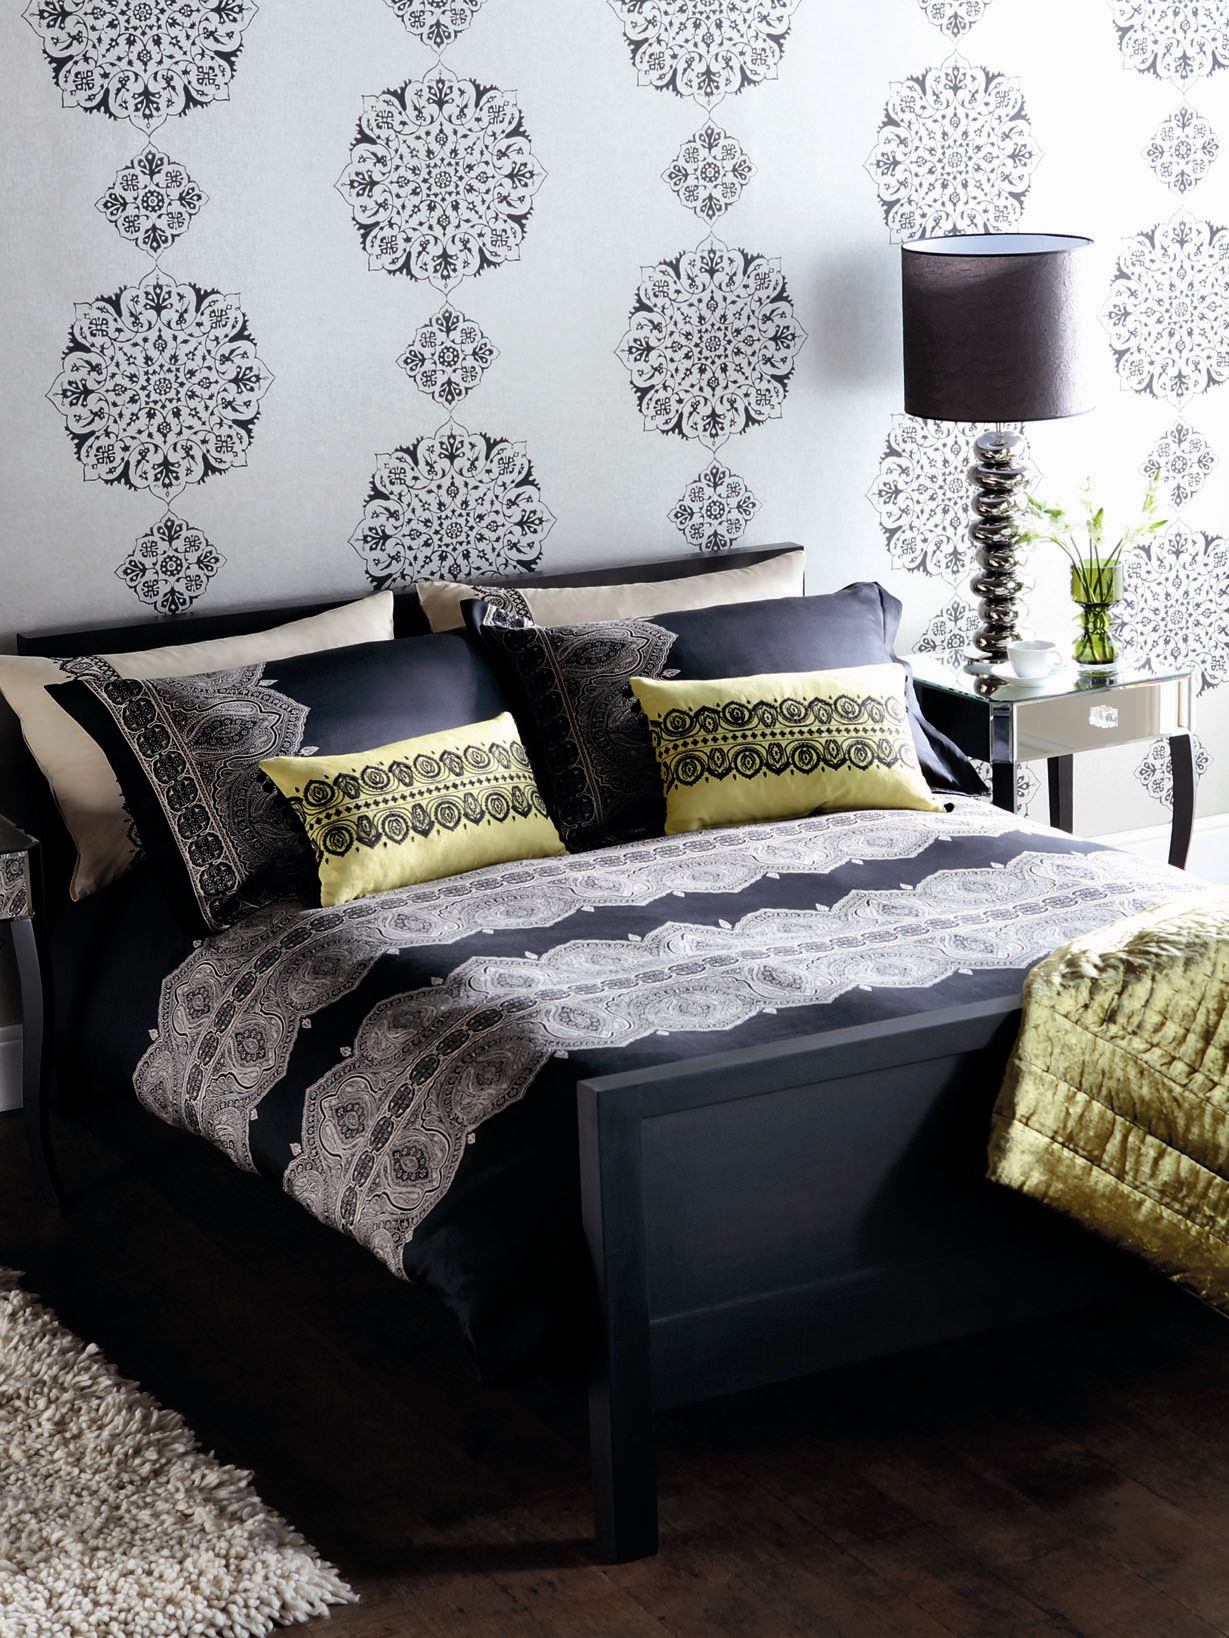 Azara black double duvet cover